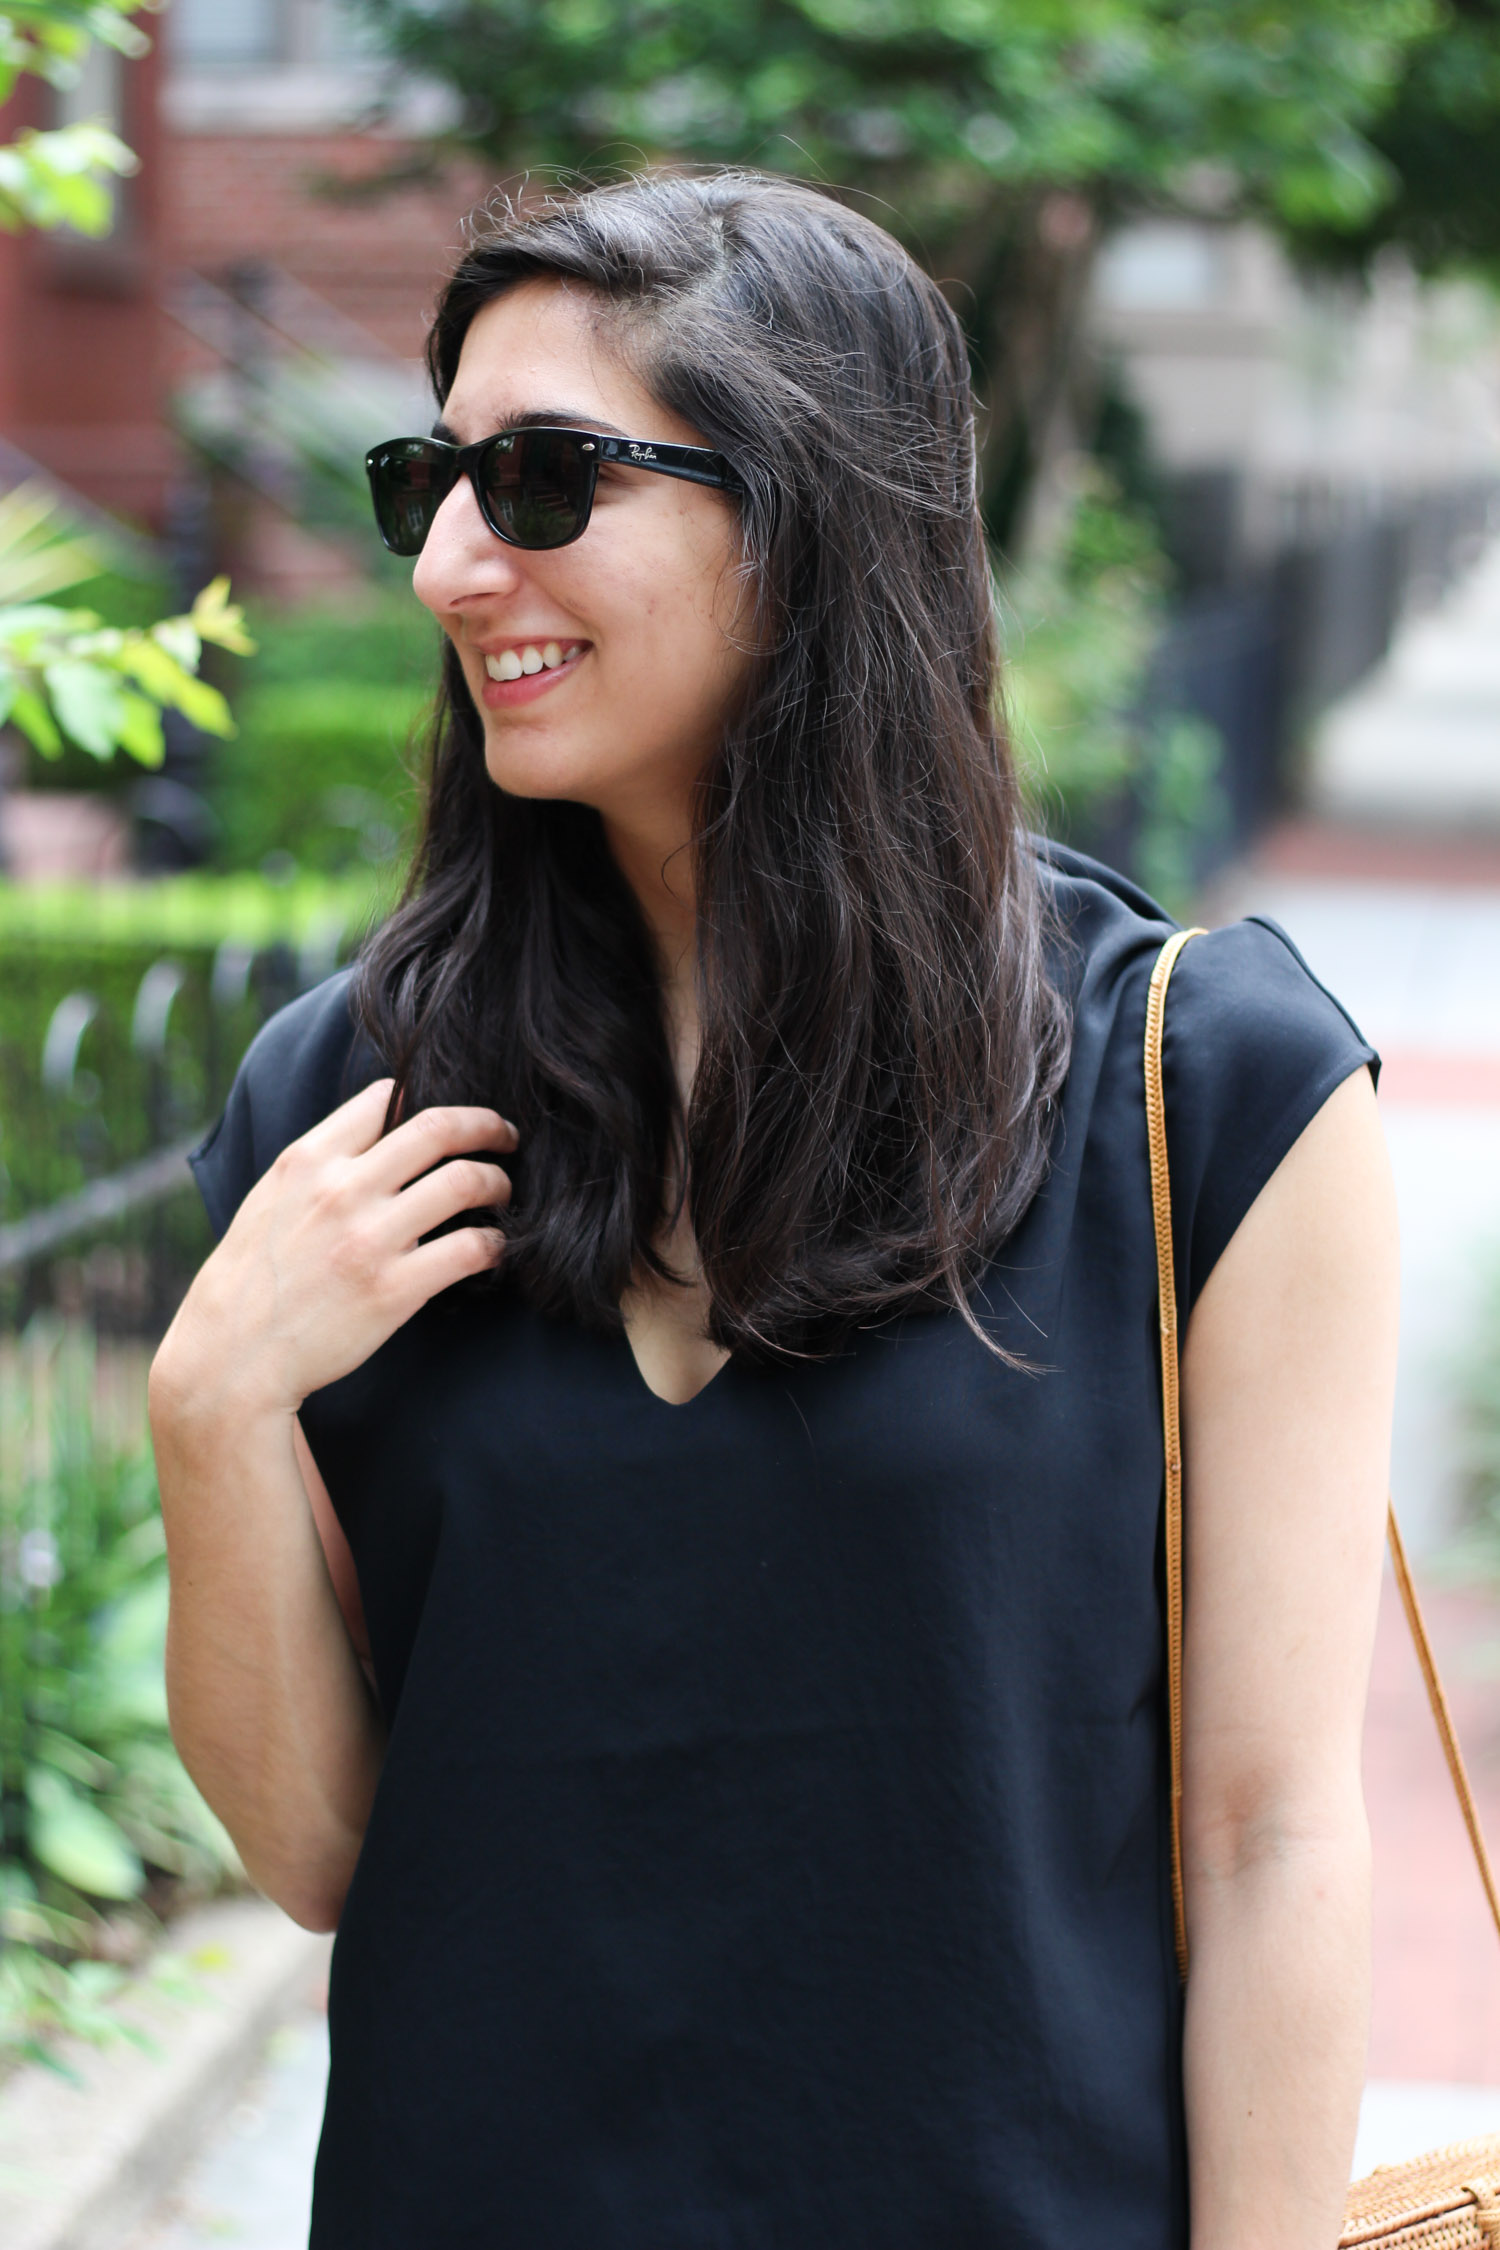 Everlane GoWeave Top - Summer Thoughts + Style featured by popular DC fashion blogger, Monica Dutia